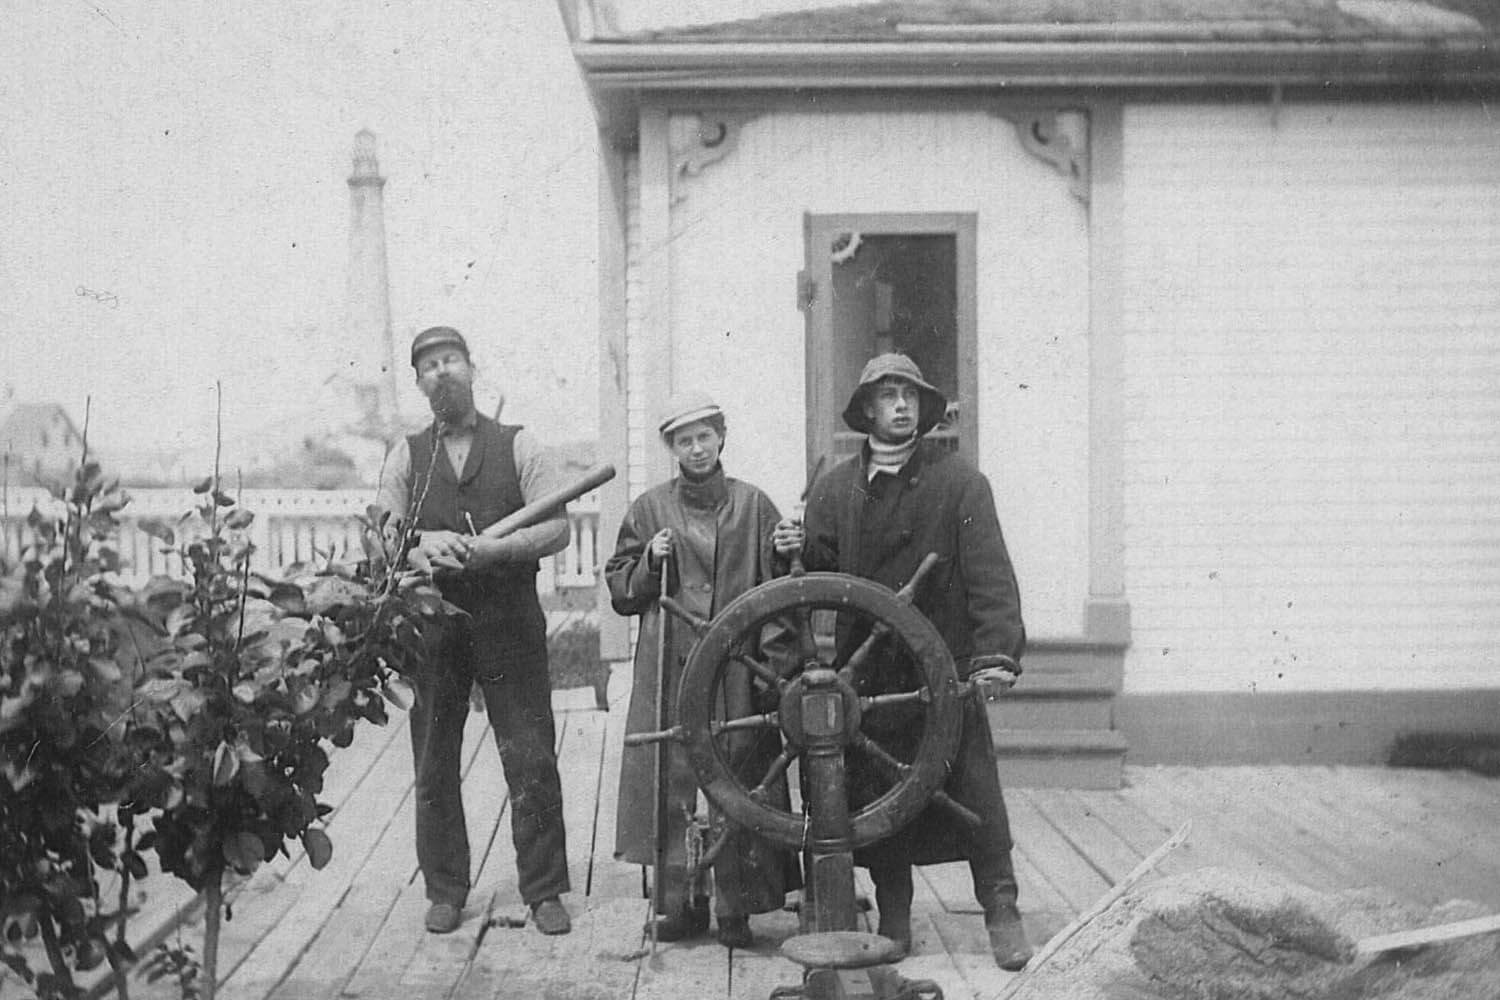 Unidentified keepers pose on porch of Principal keeper house on July 28, 1896. This may be Principal keeper Addison Franklin Tarr, with telescope, who served from 1881 to 1912.